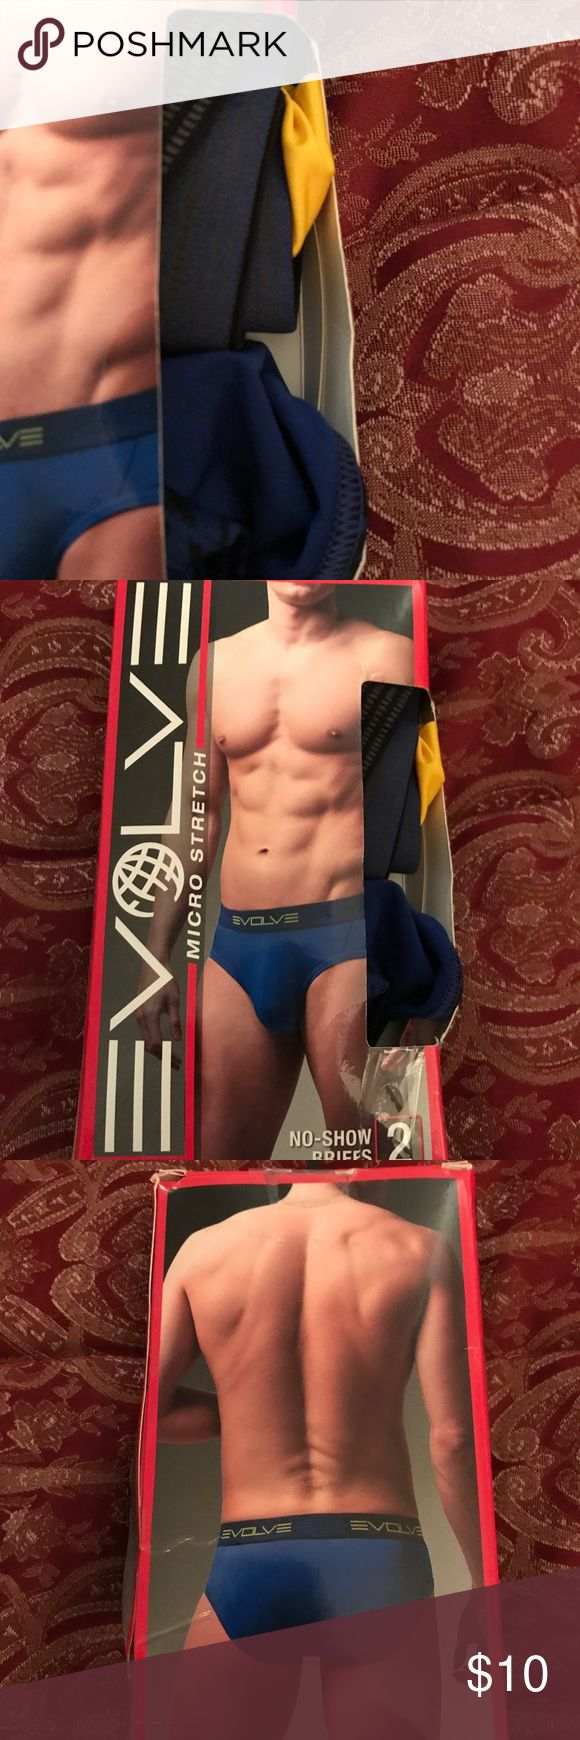 """Men's Evolve by 2xist No Show Briefs Underwear 2pk Men's Evolve by 2xist No Show Briefs Underwear....2pk......Size Large.....box had been opened but they are brand new.....Size Large....fits waist 36"""" to 38"""" inches....smoke and pet free home. 2xist Underwear & Socks Briefs"""